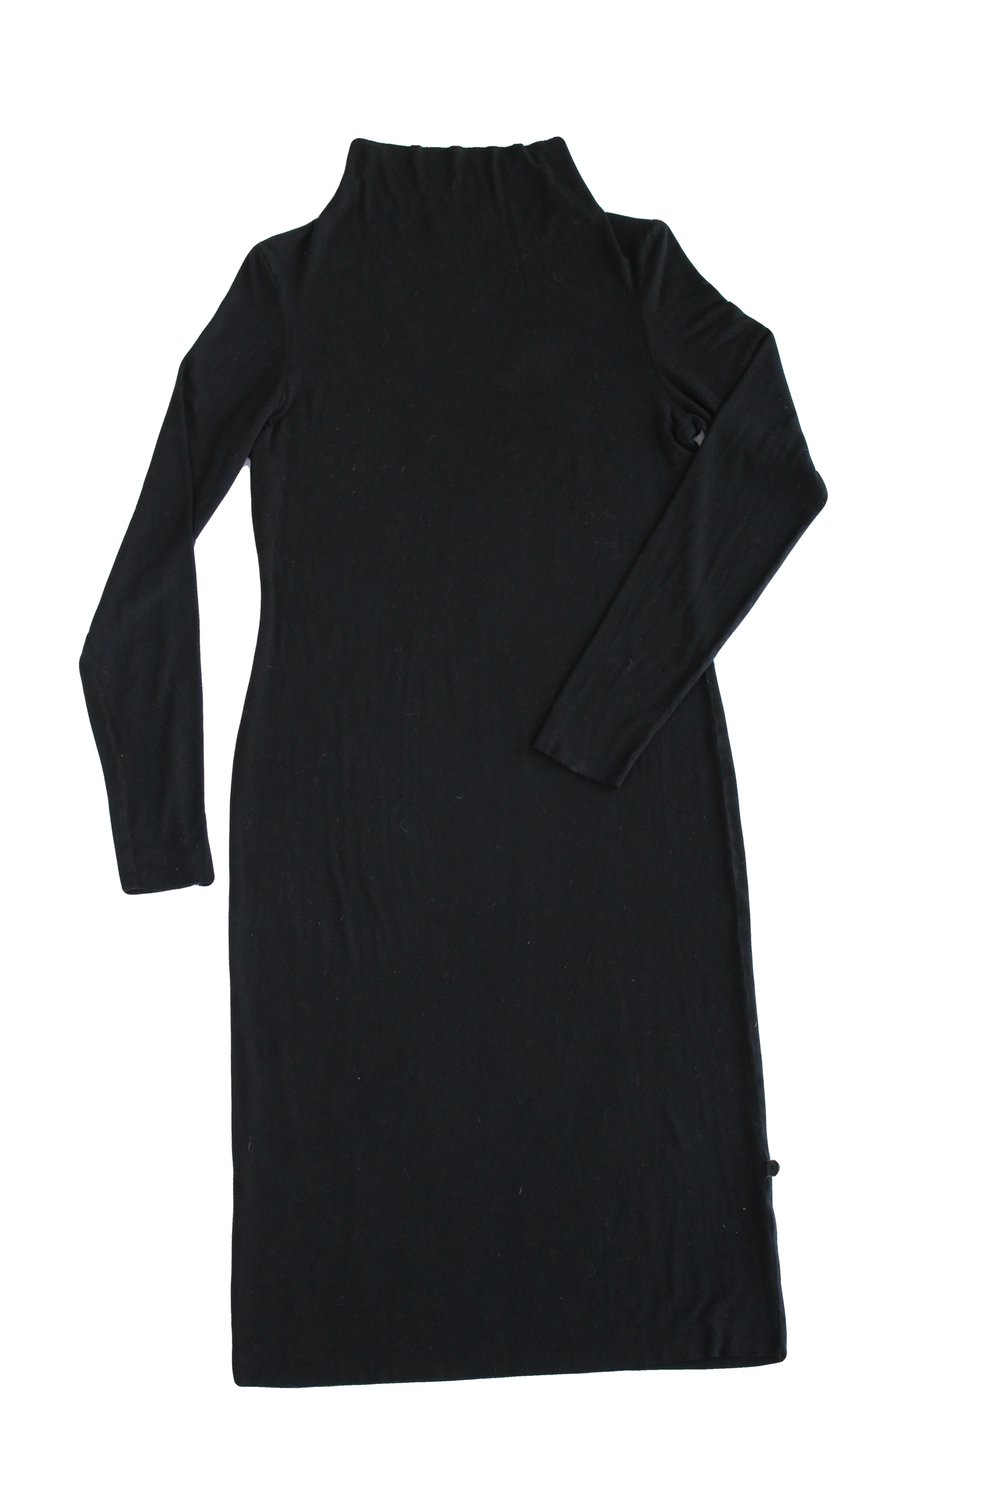 BlackDress01.jpg